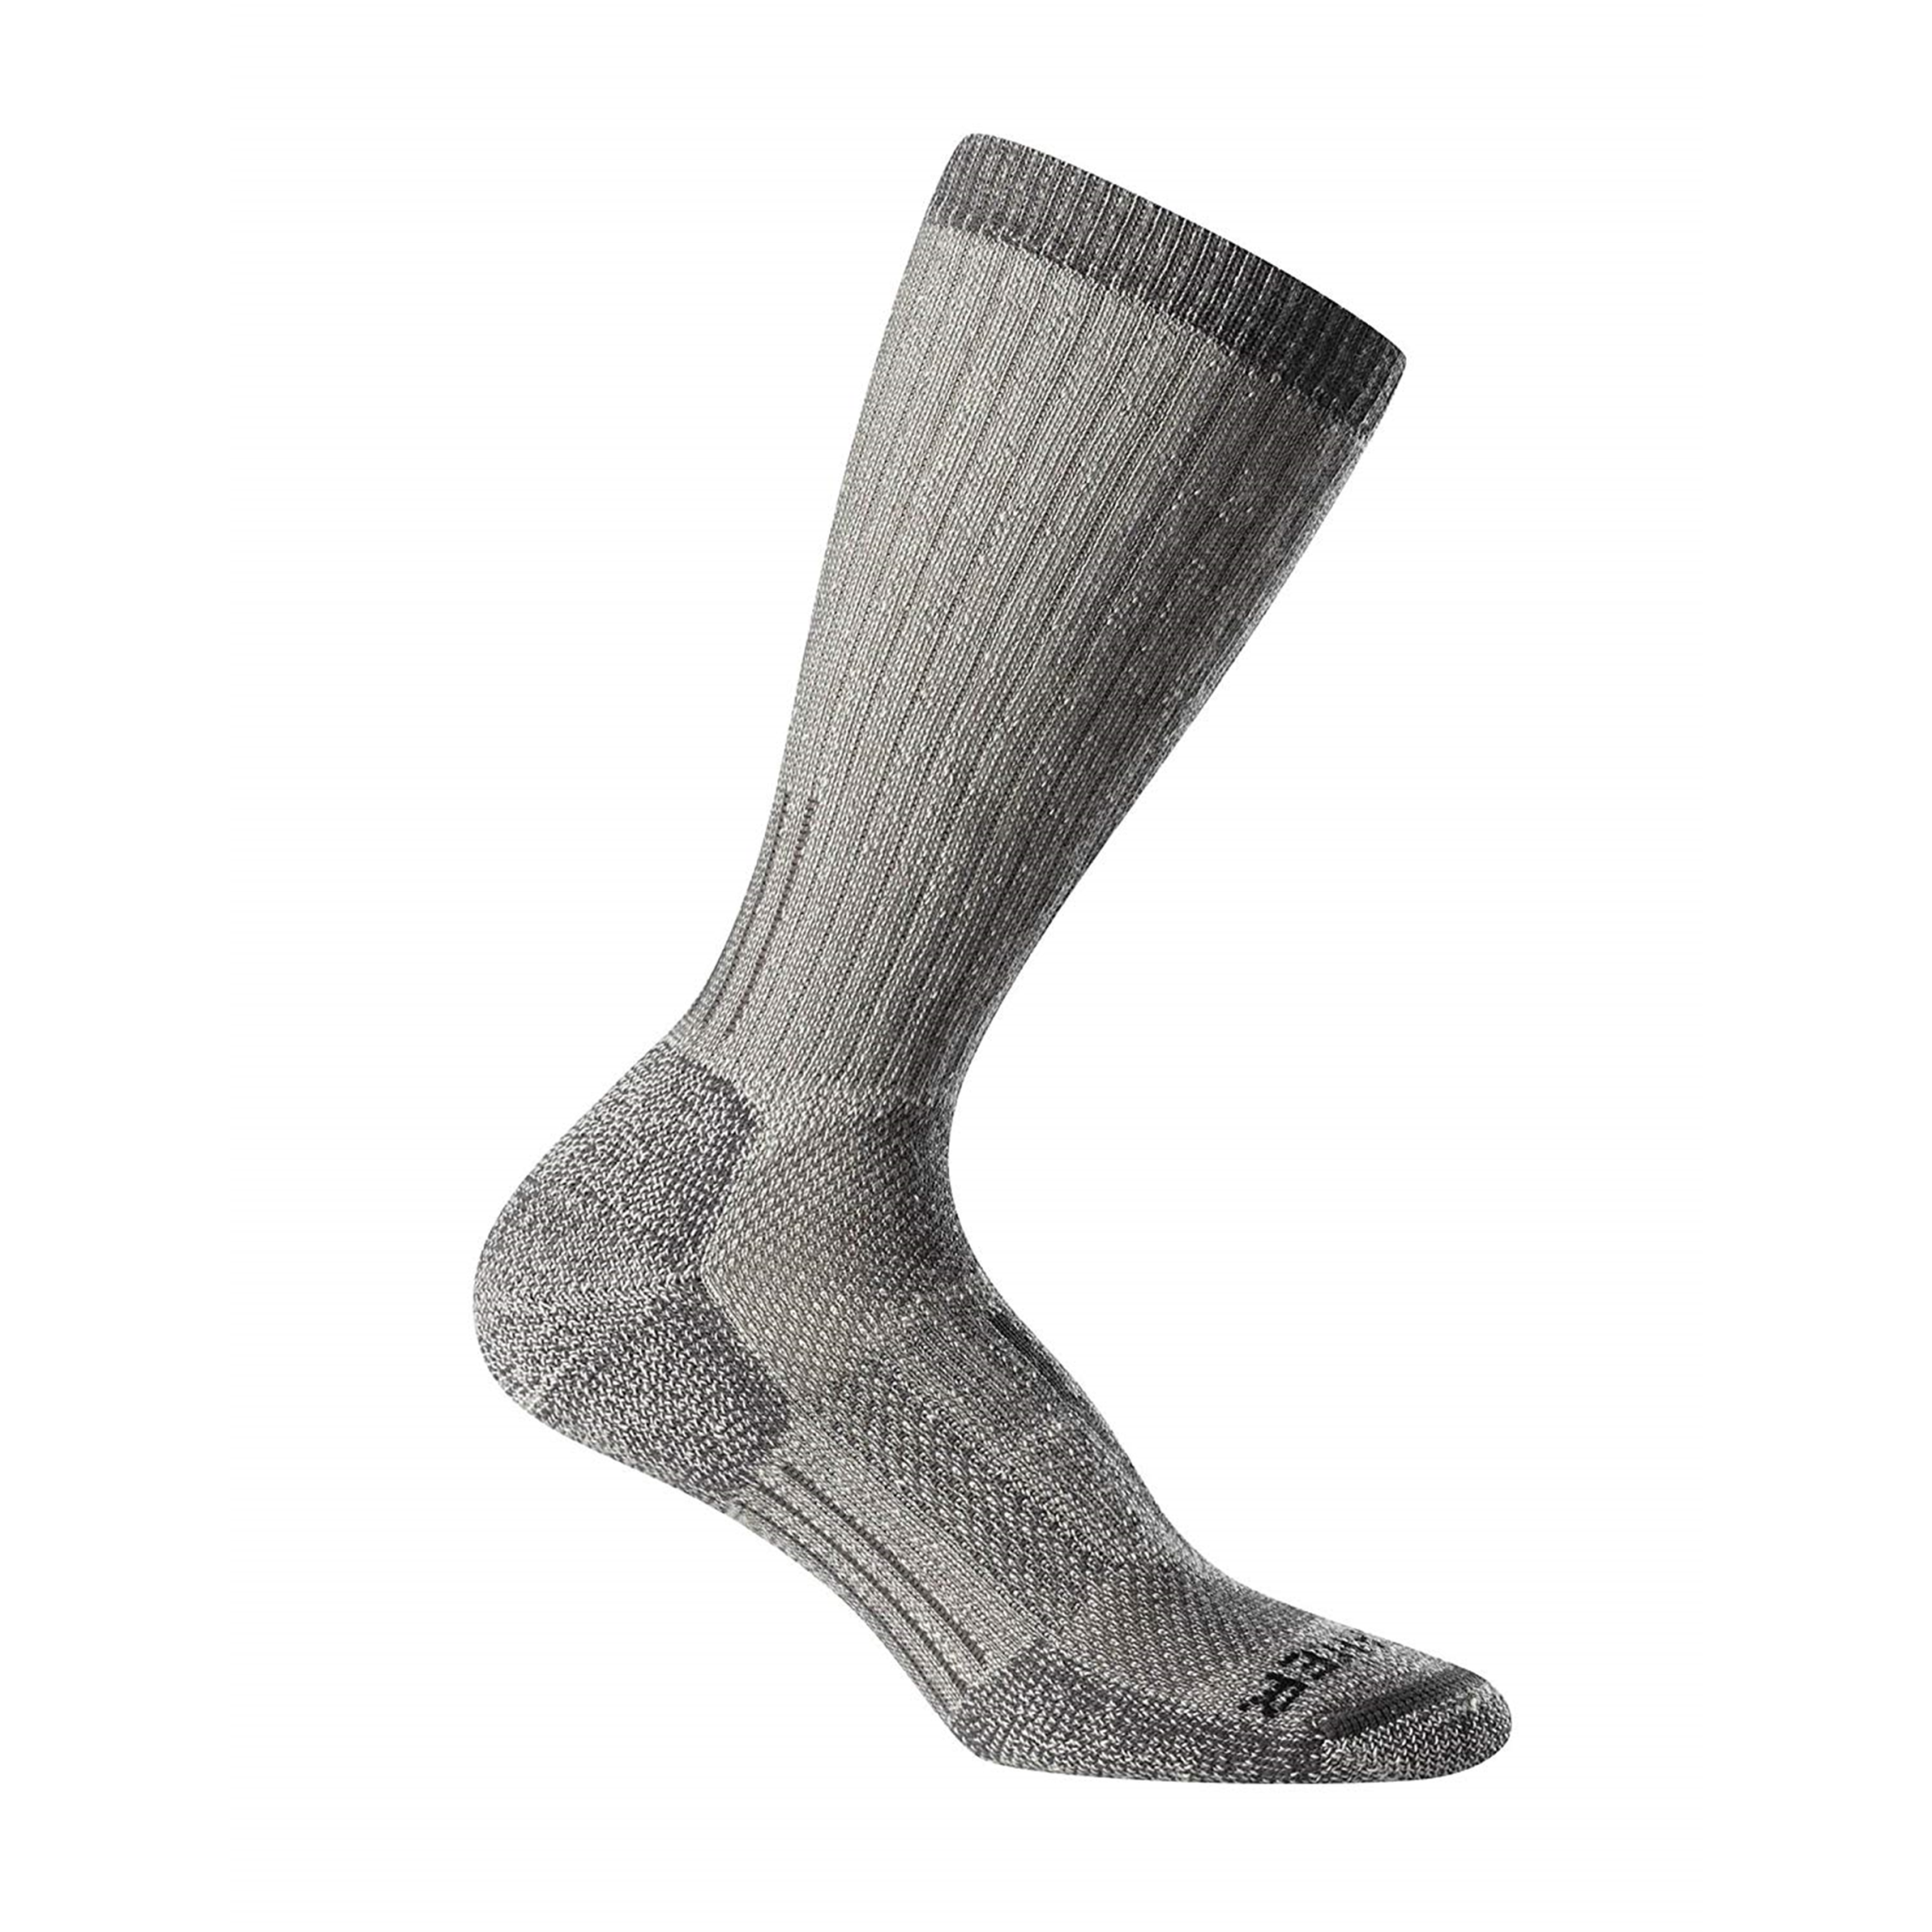 Icebreaker Merino Clothing Inc Icebreaker Mountaineer Expedition Mid Calf Womens Natural Monsoon Heather Socks